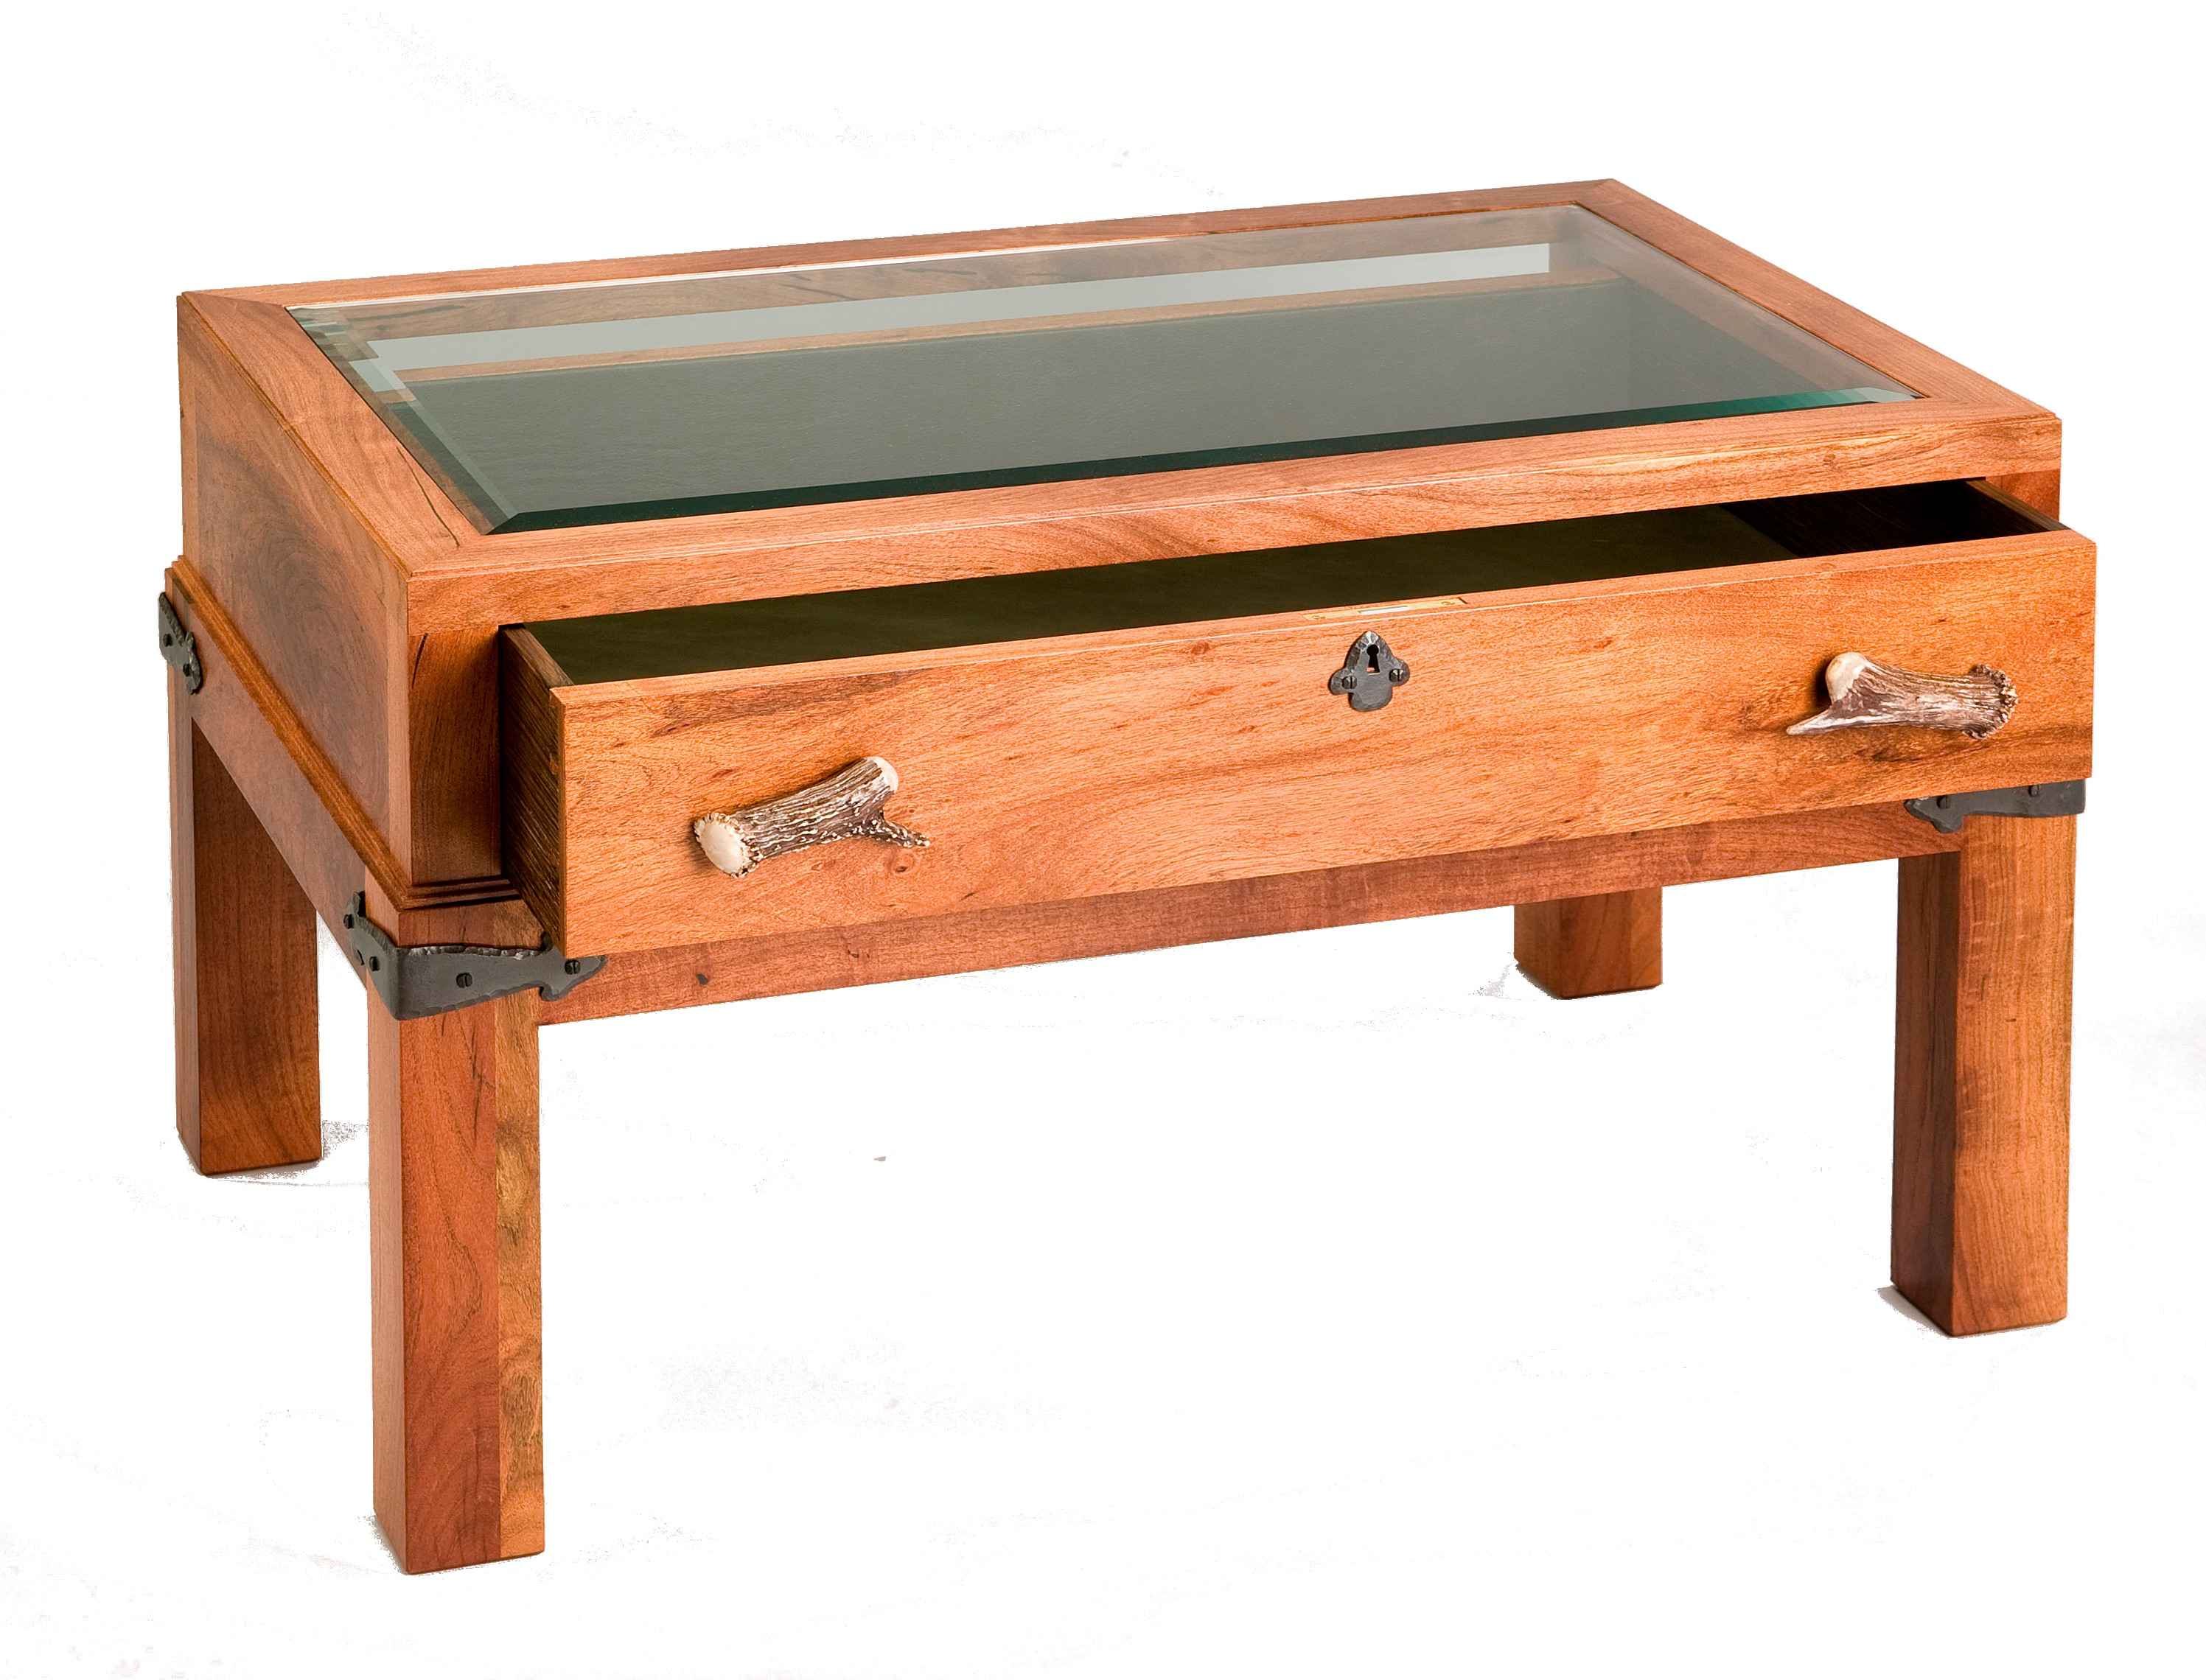 Display Coffee Table ... by  Rex White - Masterpiece Online